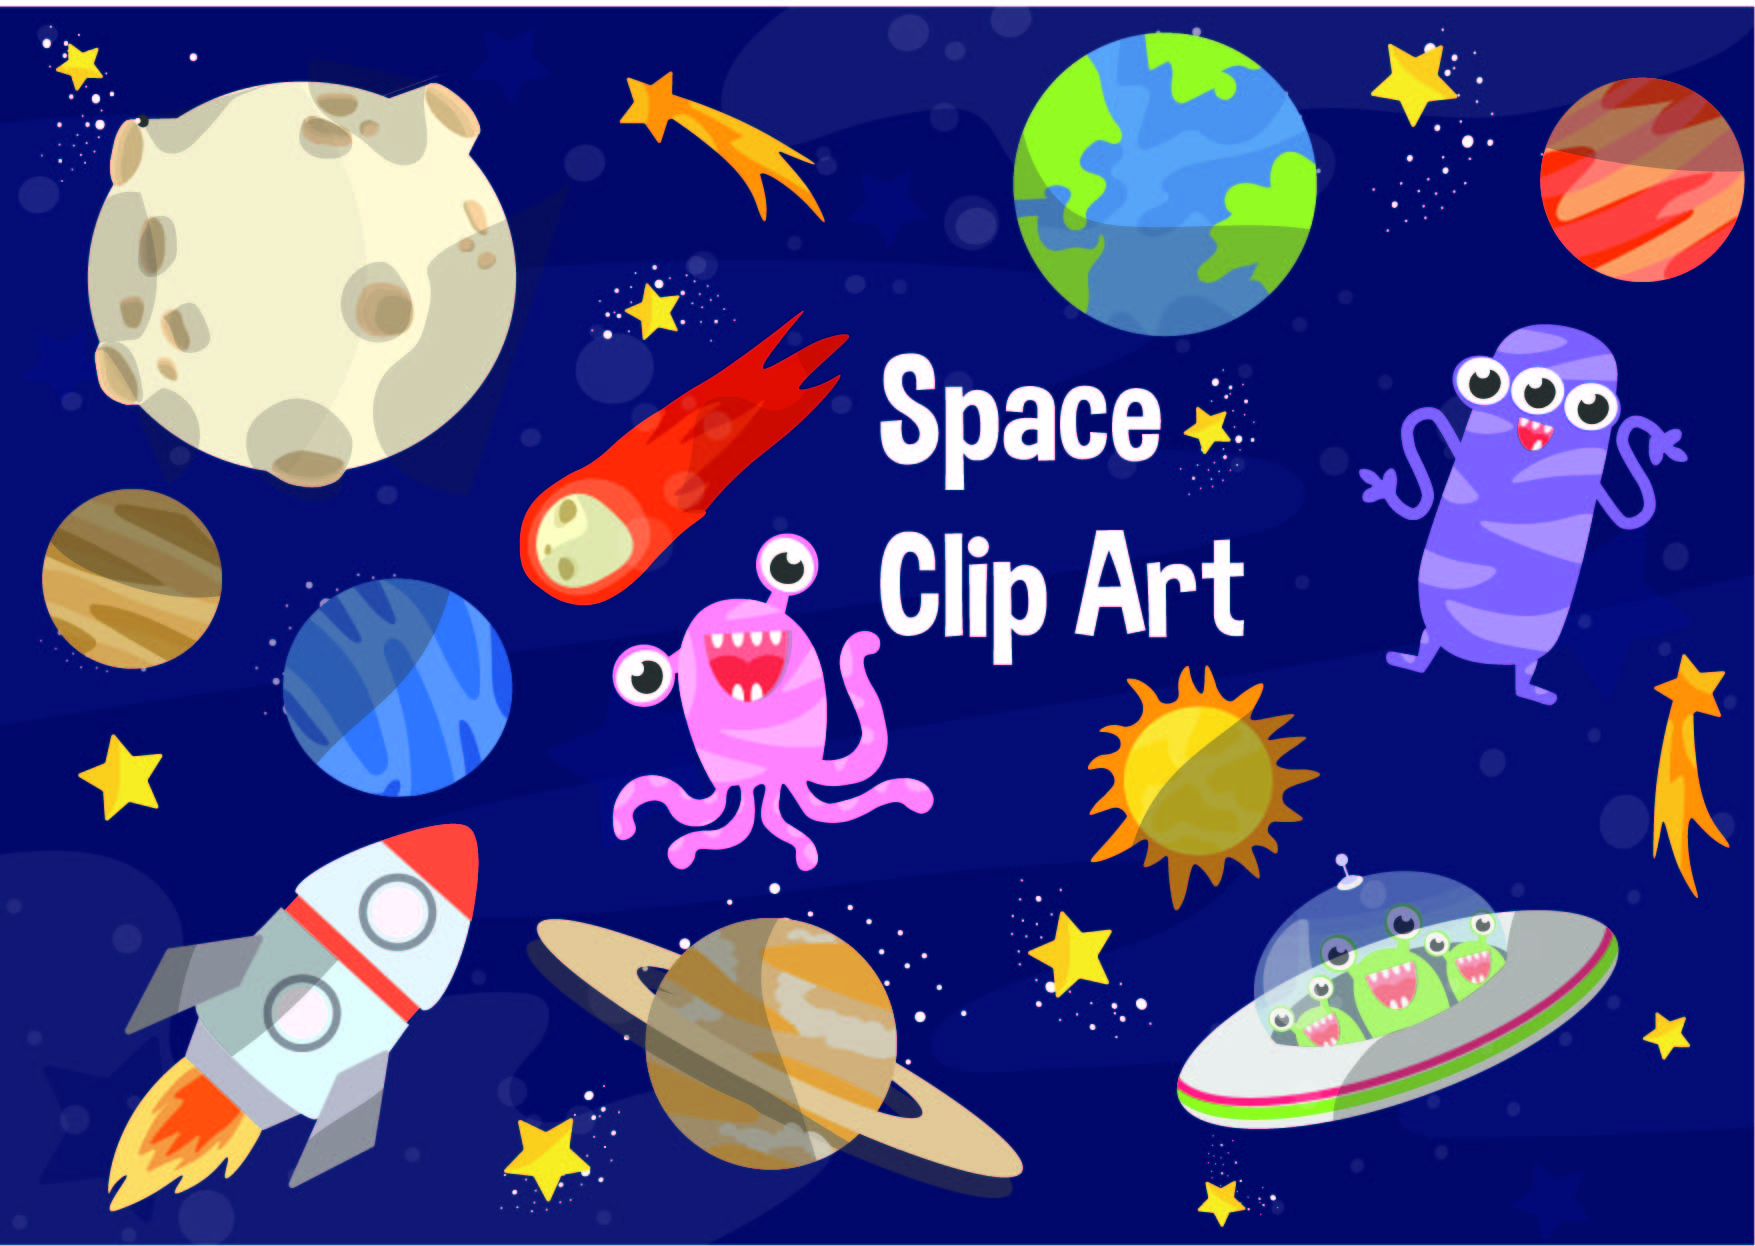 Download Free Space Clip Art Graphic By Party With Unicorns Creative Fabrica for Cricut Explore, Silhouette and other cutting machines.